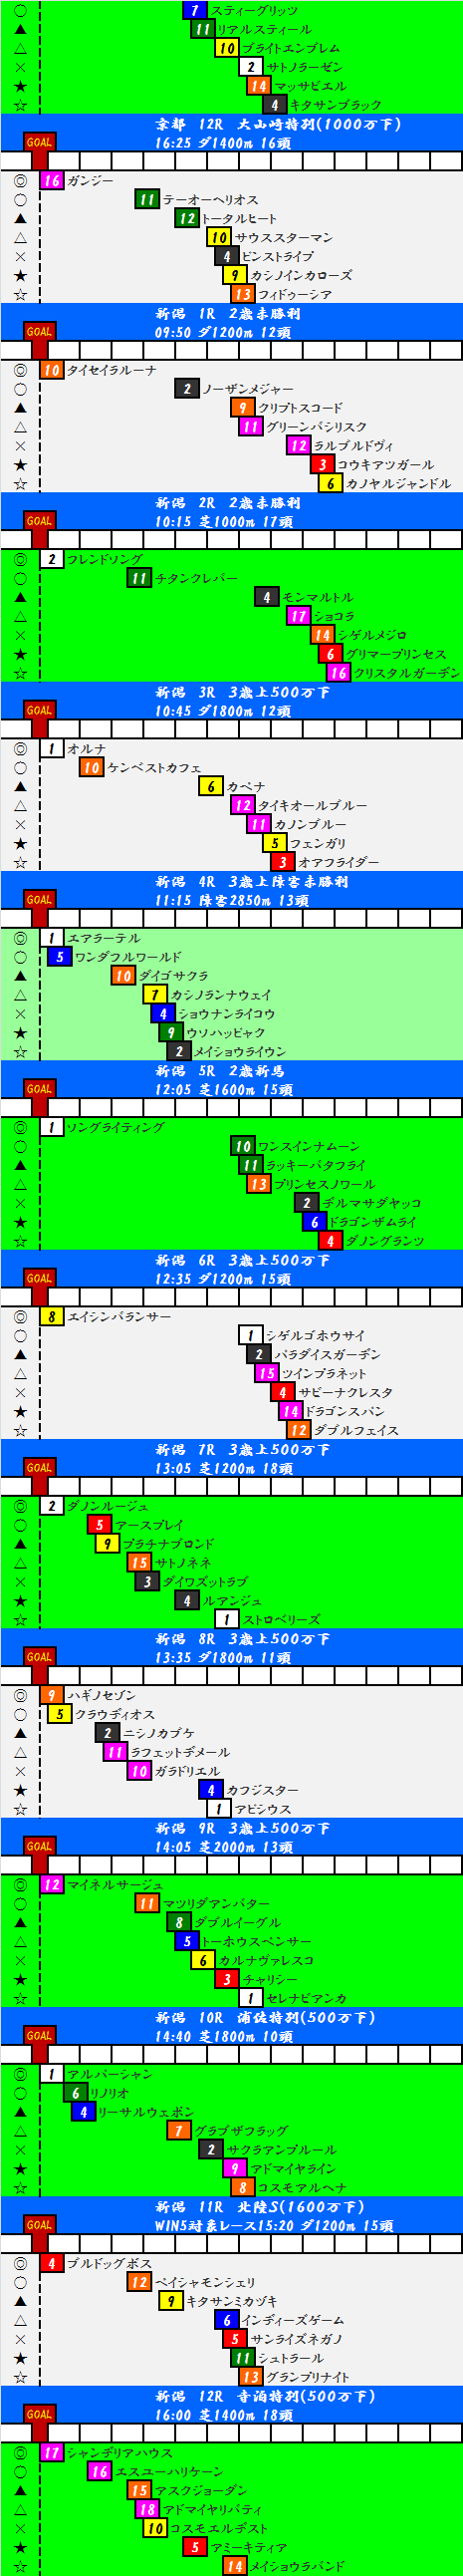 2015102502.png